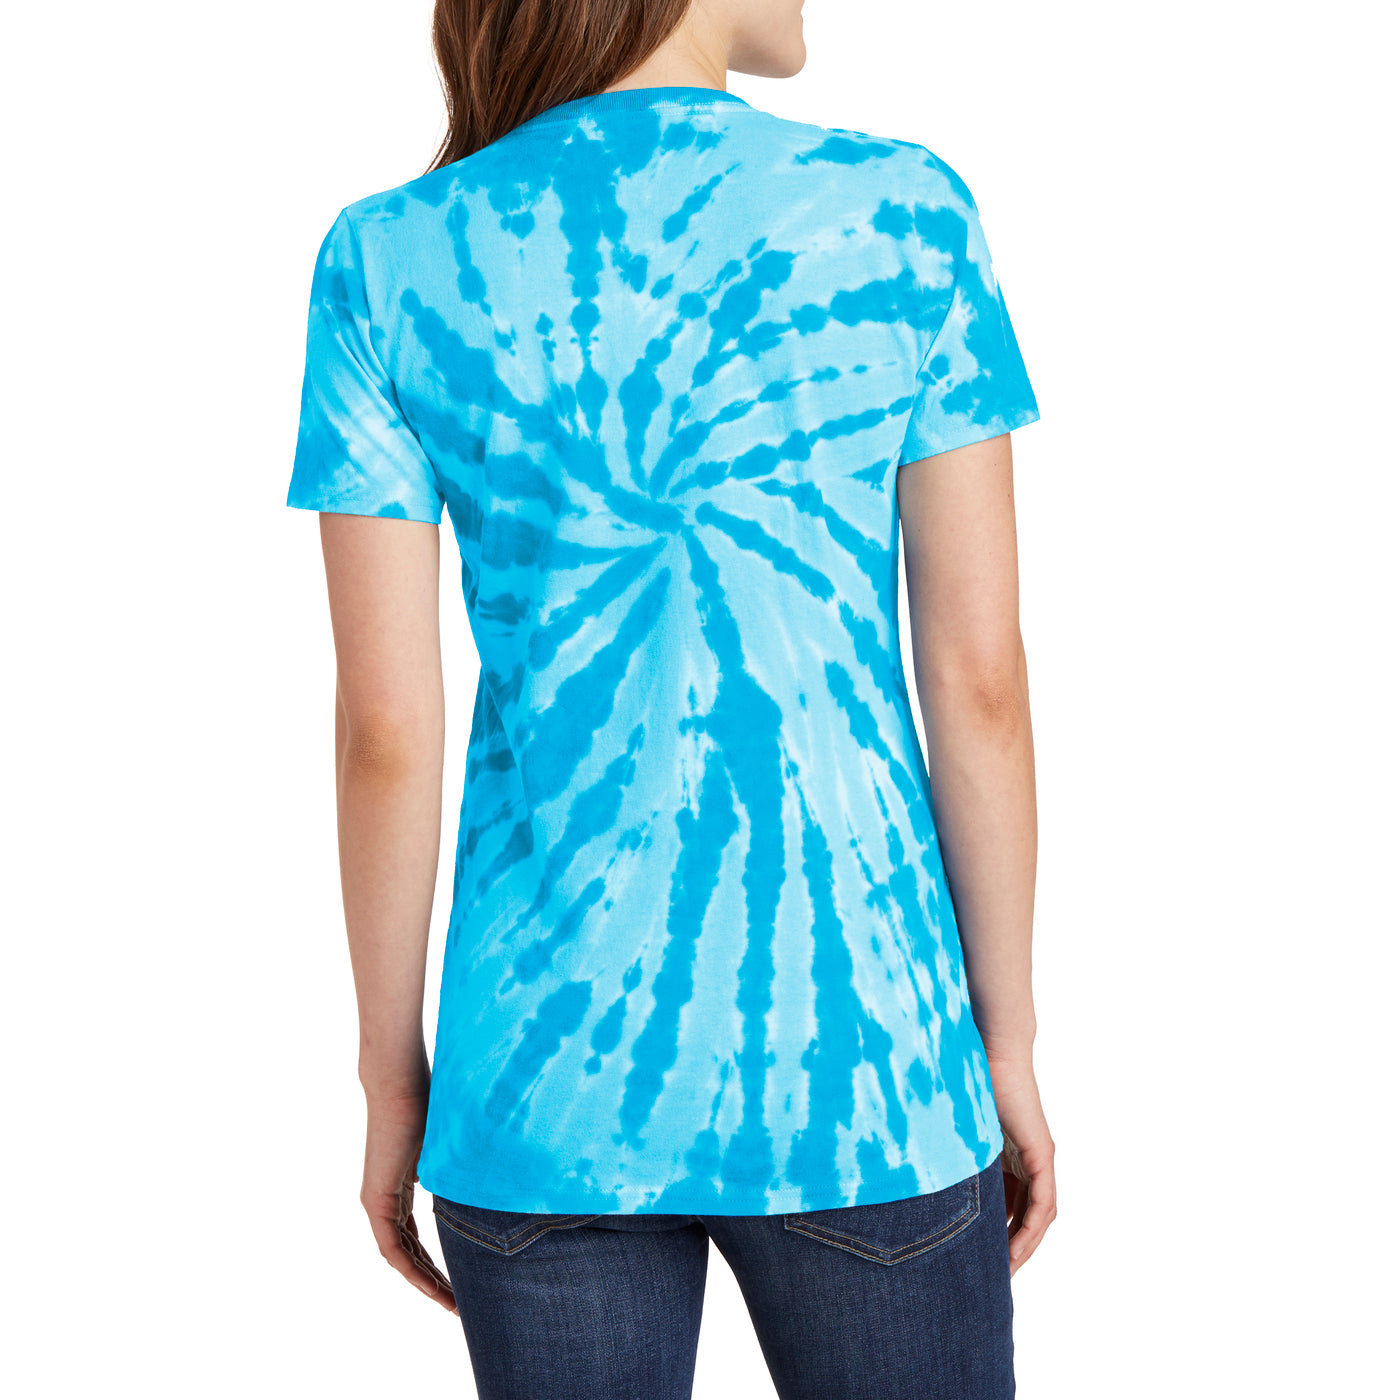 Womens Tie-Dye V-Neck Tee - Turquoise - Back